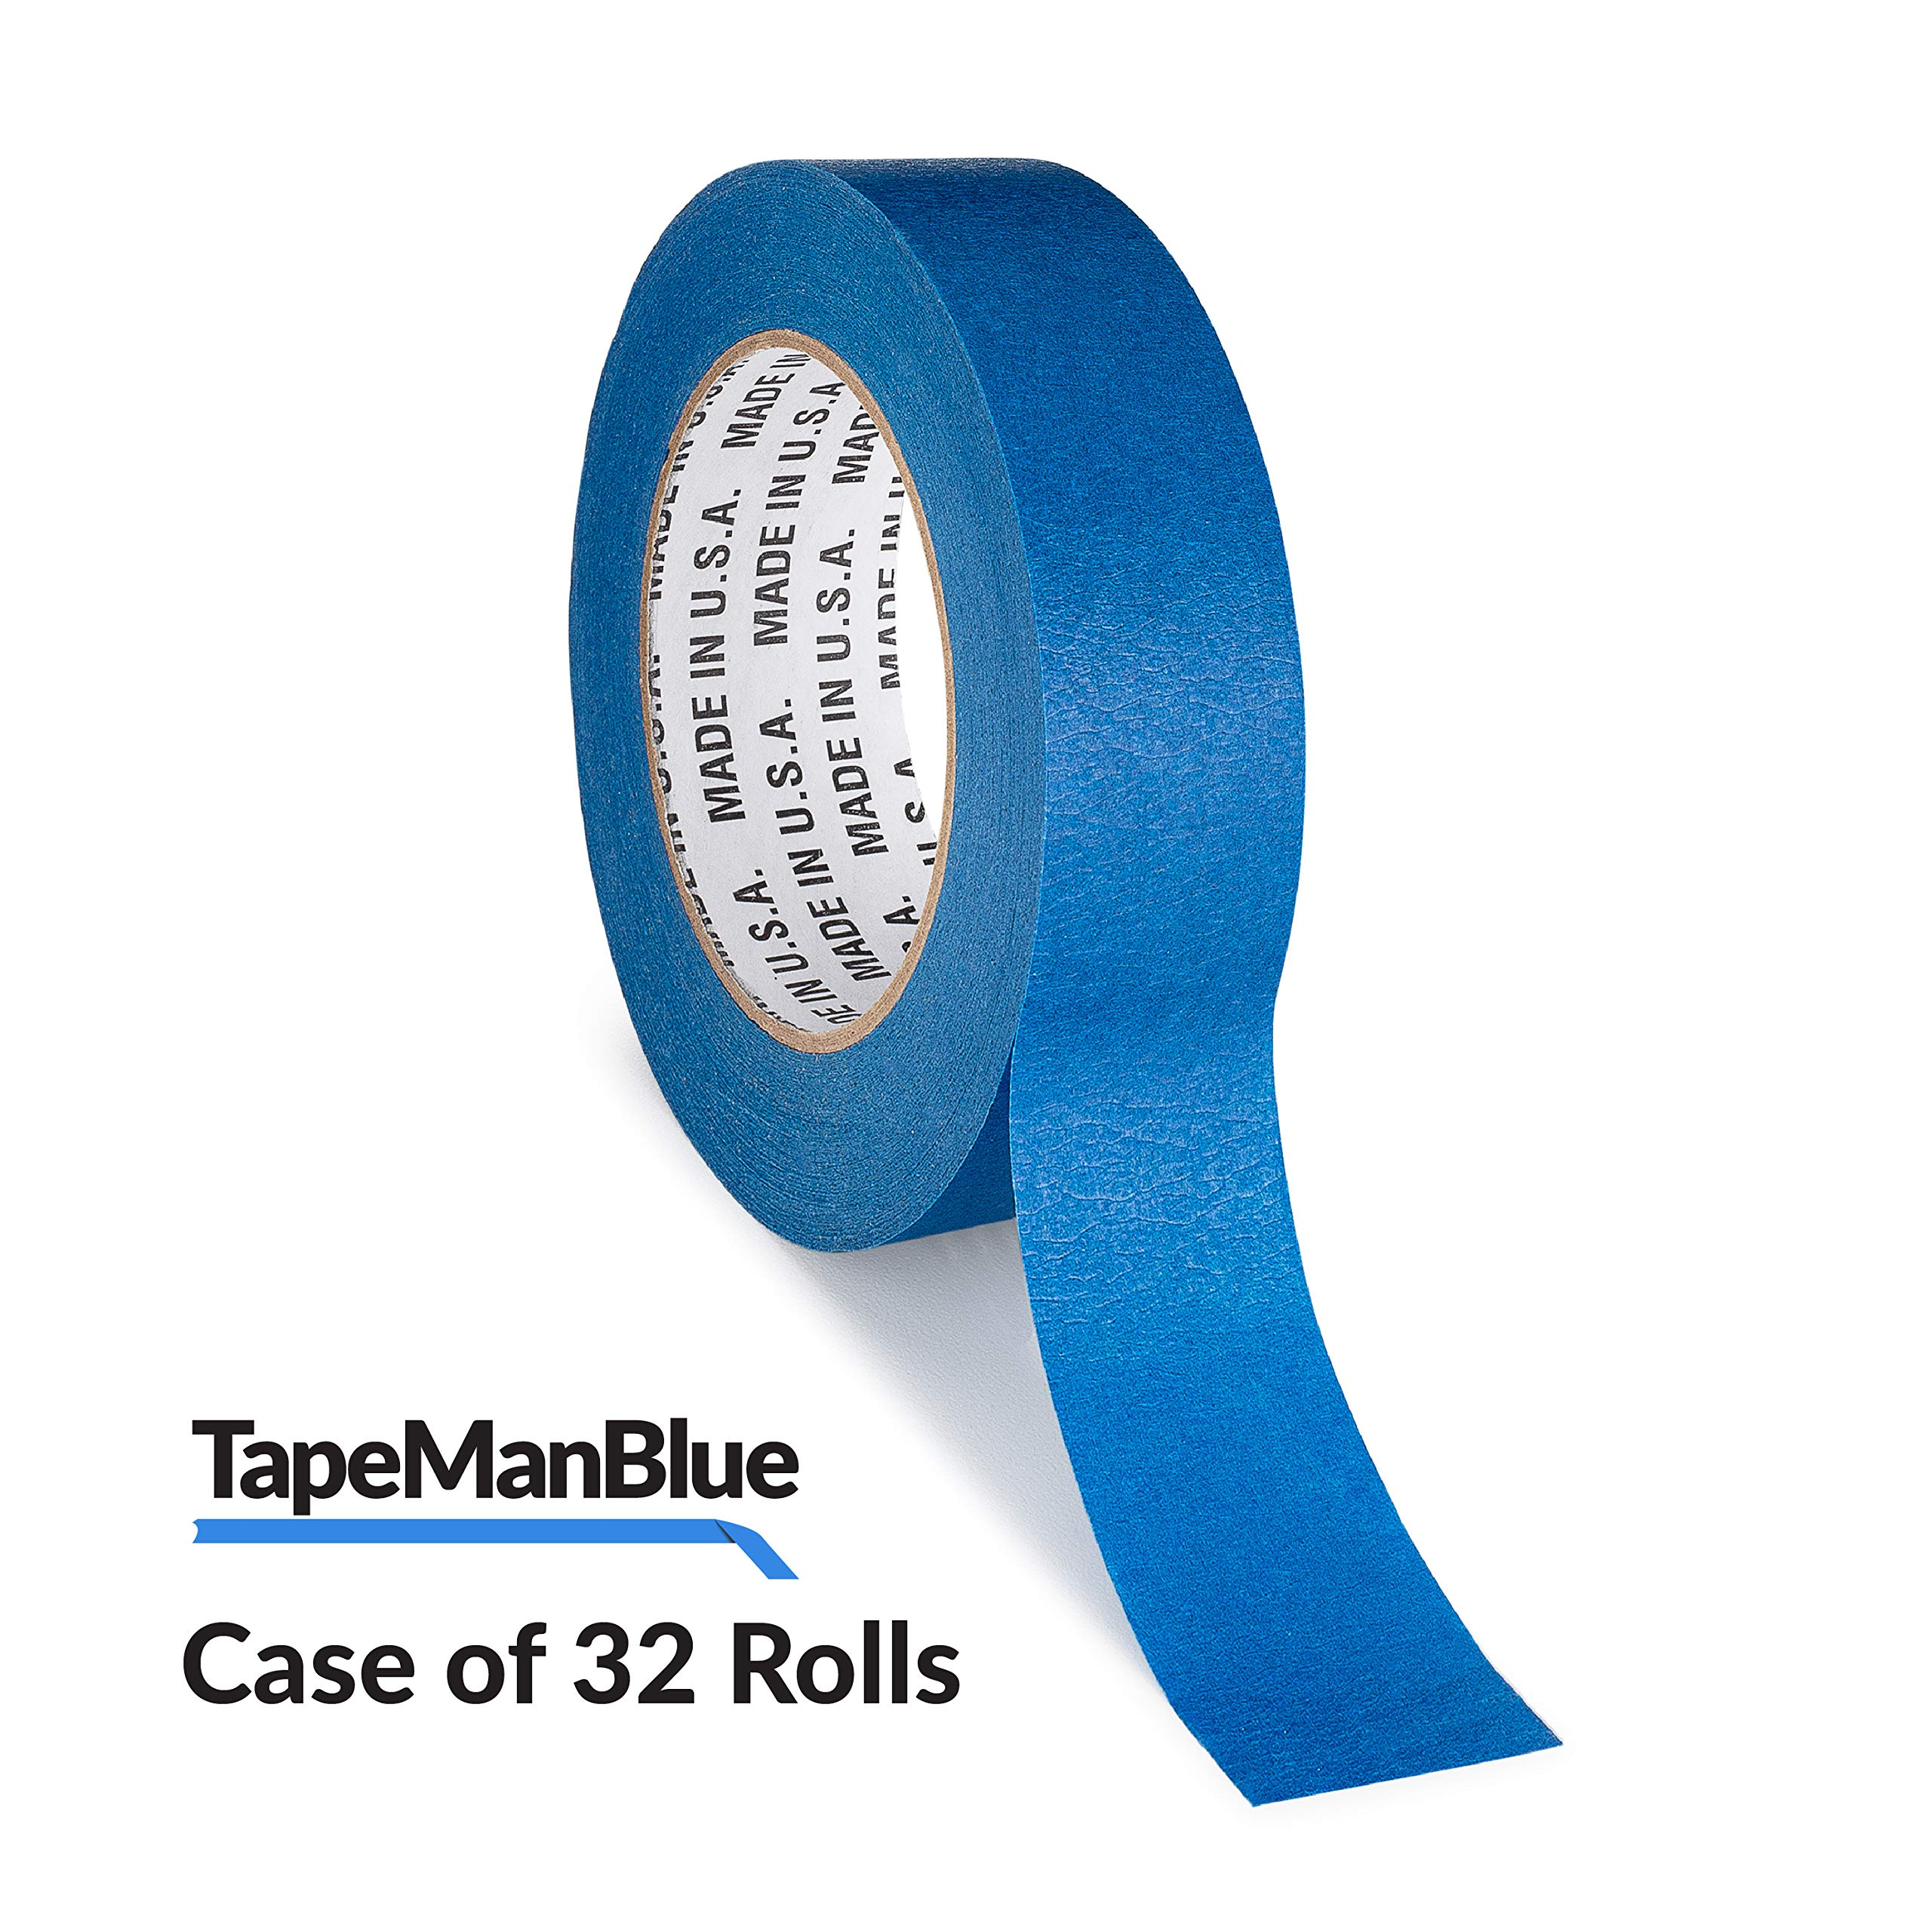 TapeManBlue Blue Painters Tape, 1.5 inch x 60 Yards, Case of 32 Rolls, Made in USA by TapeManBlue